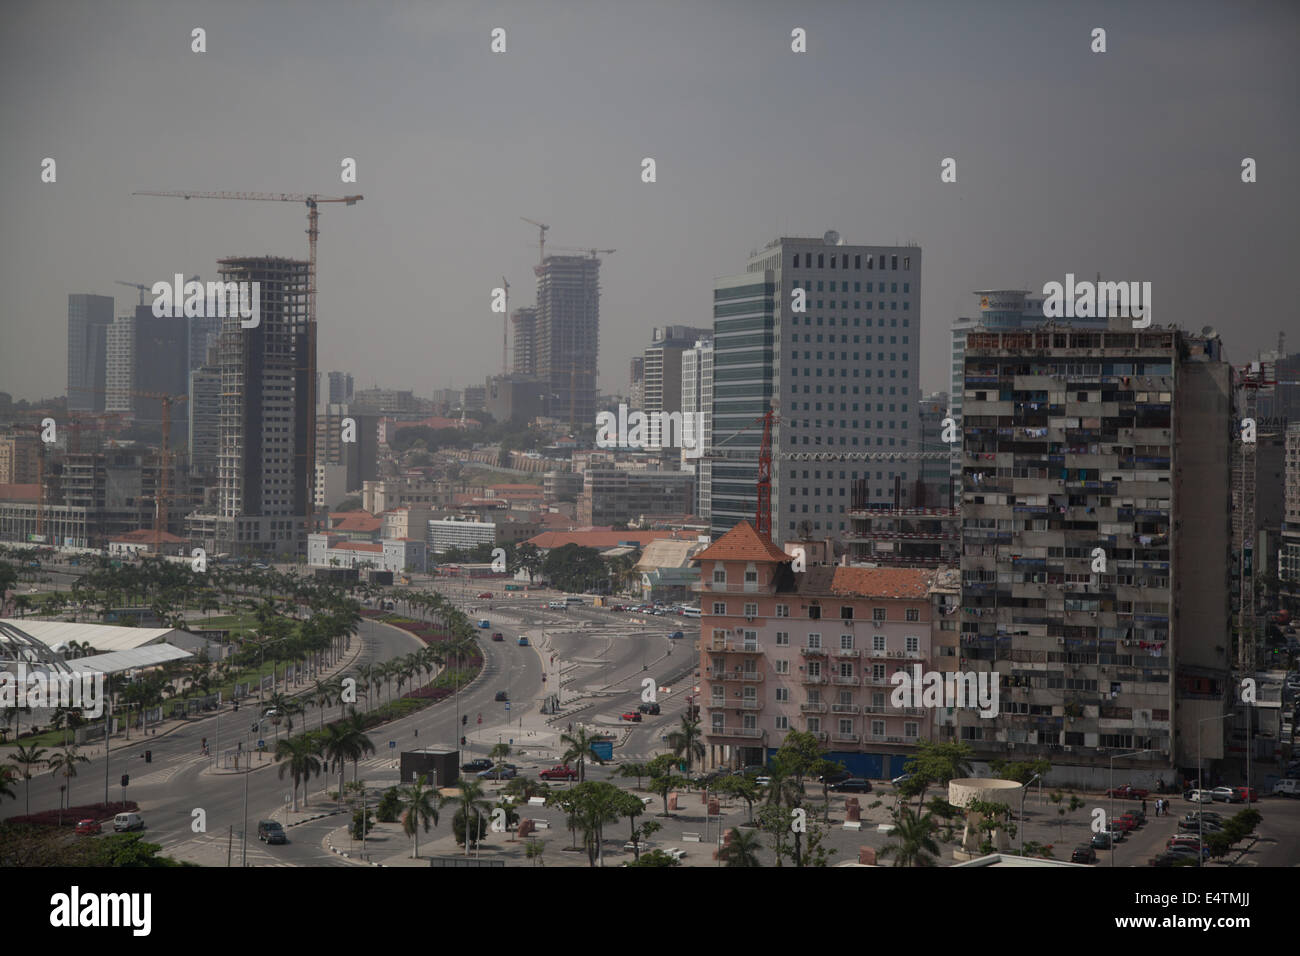 Angola, Luanda buildings country profile cityscape city life new sky scrapers in town - Stock Image